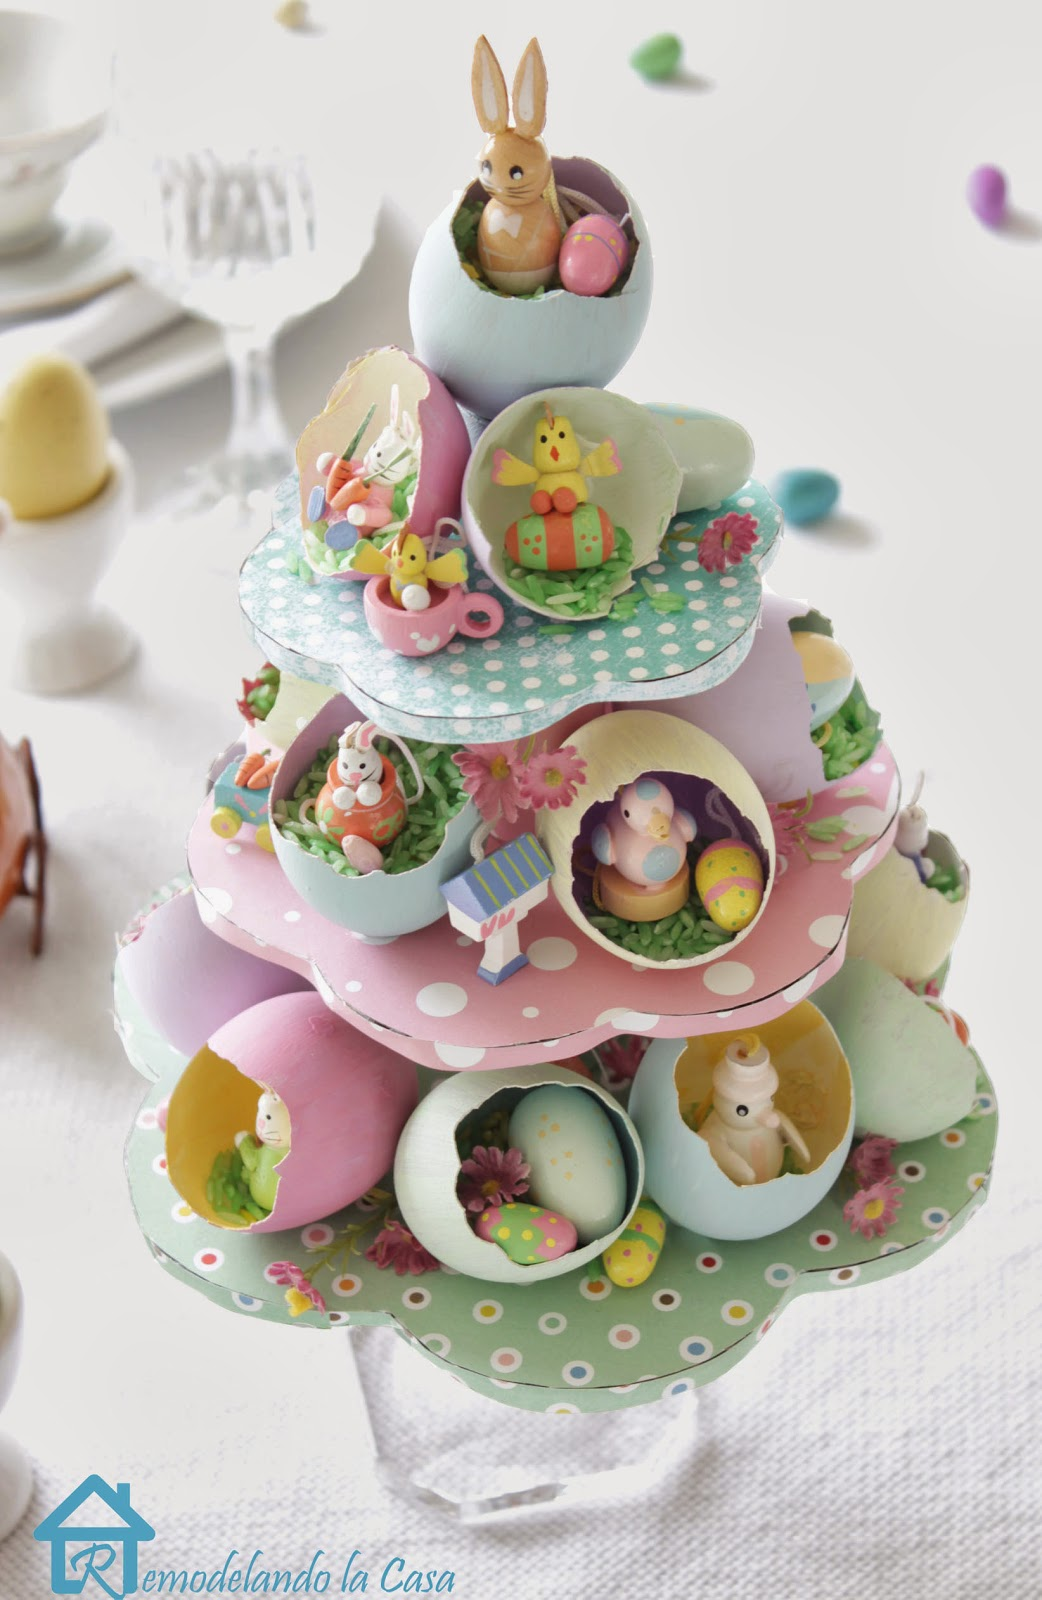 Remodelando la casa easter egg tree centerpiece How to make an easter egg tree